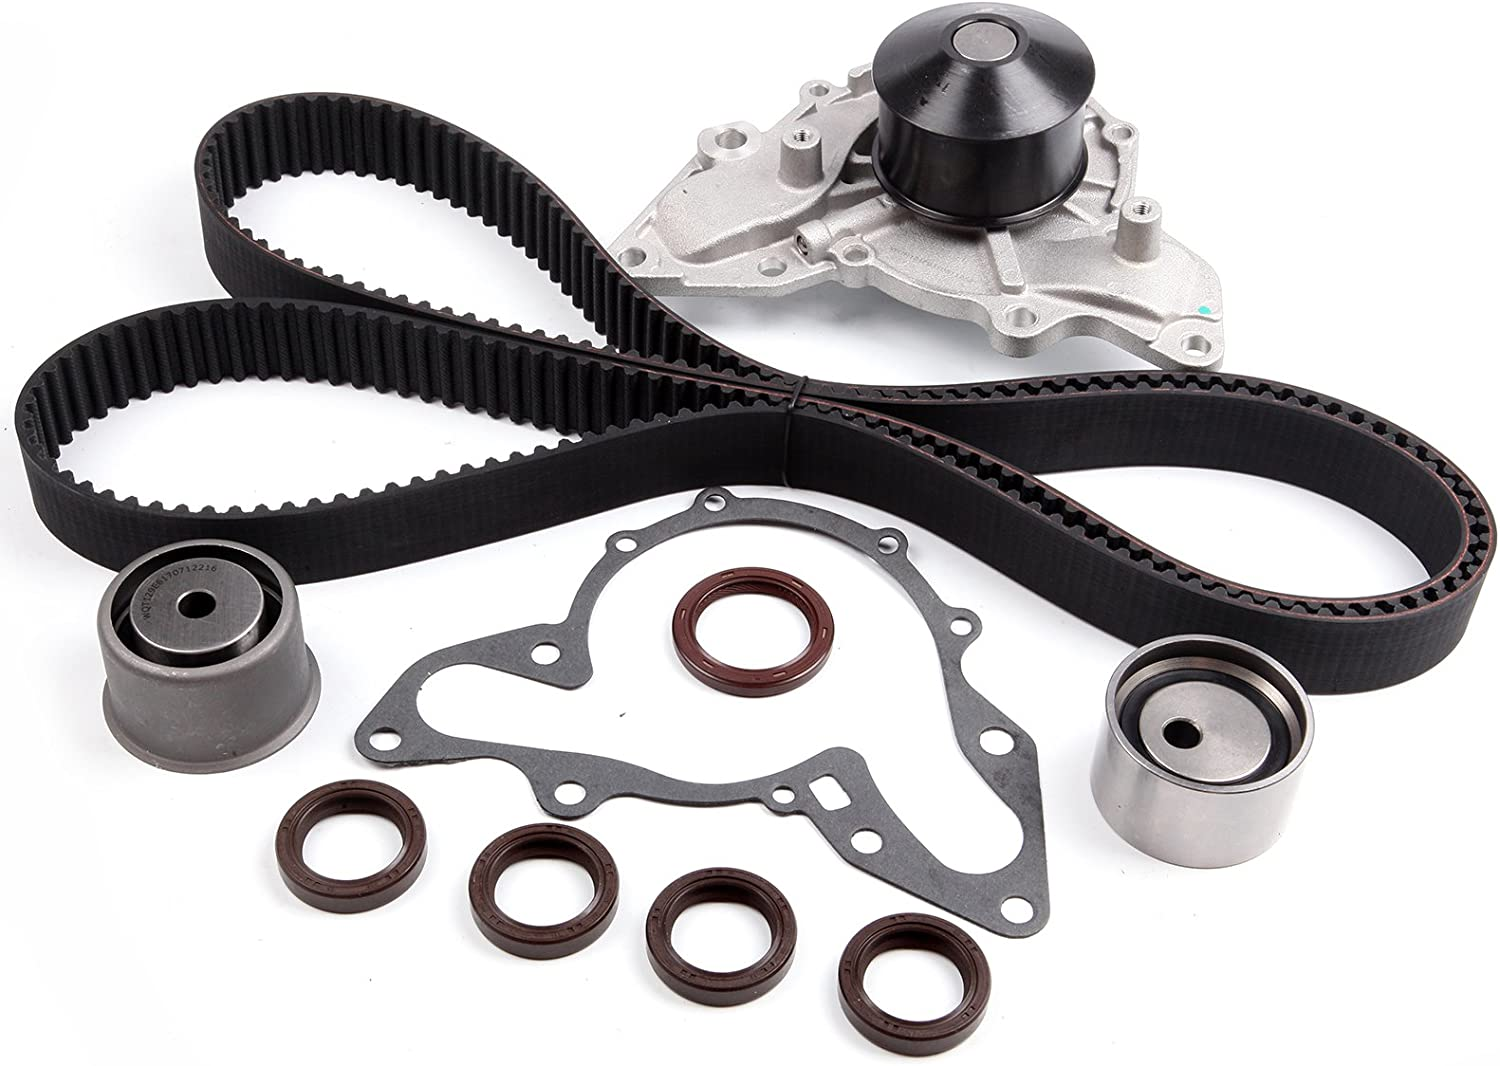 ANPART Timing Belt Kit Fit For 2003-2006 Kia Sorento Timing Belt Water Pump Tensioner Gasket Set